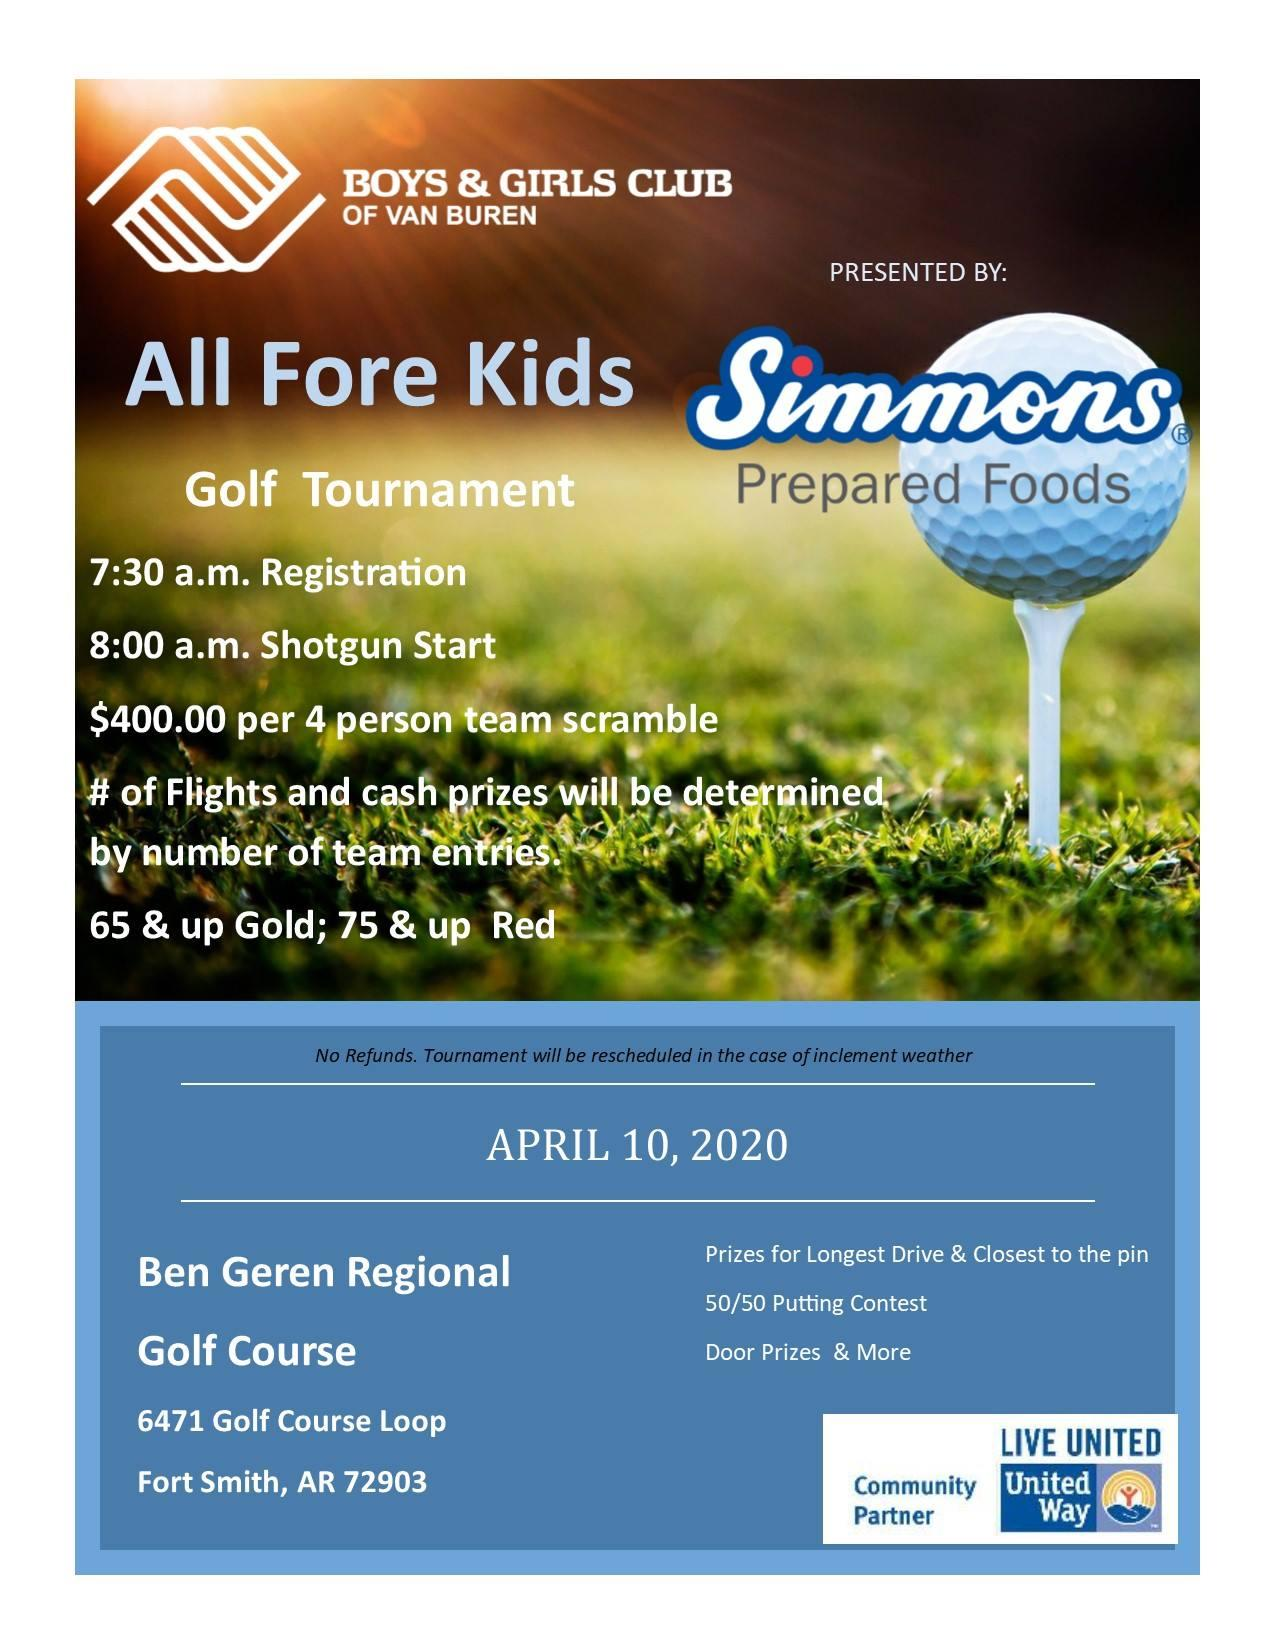 All Fore Kids Golf Tournament